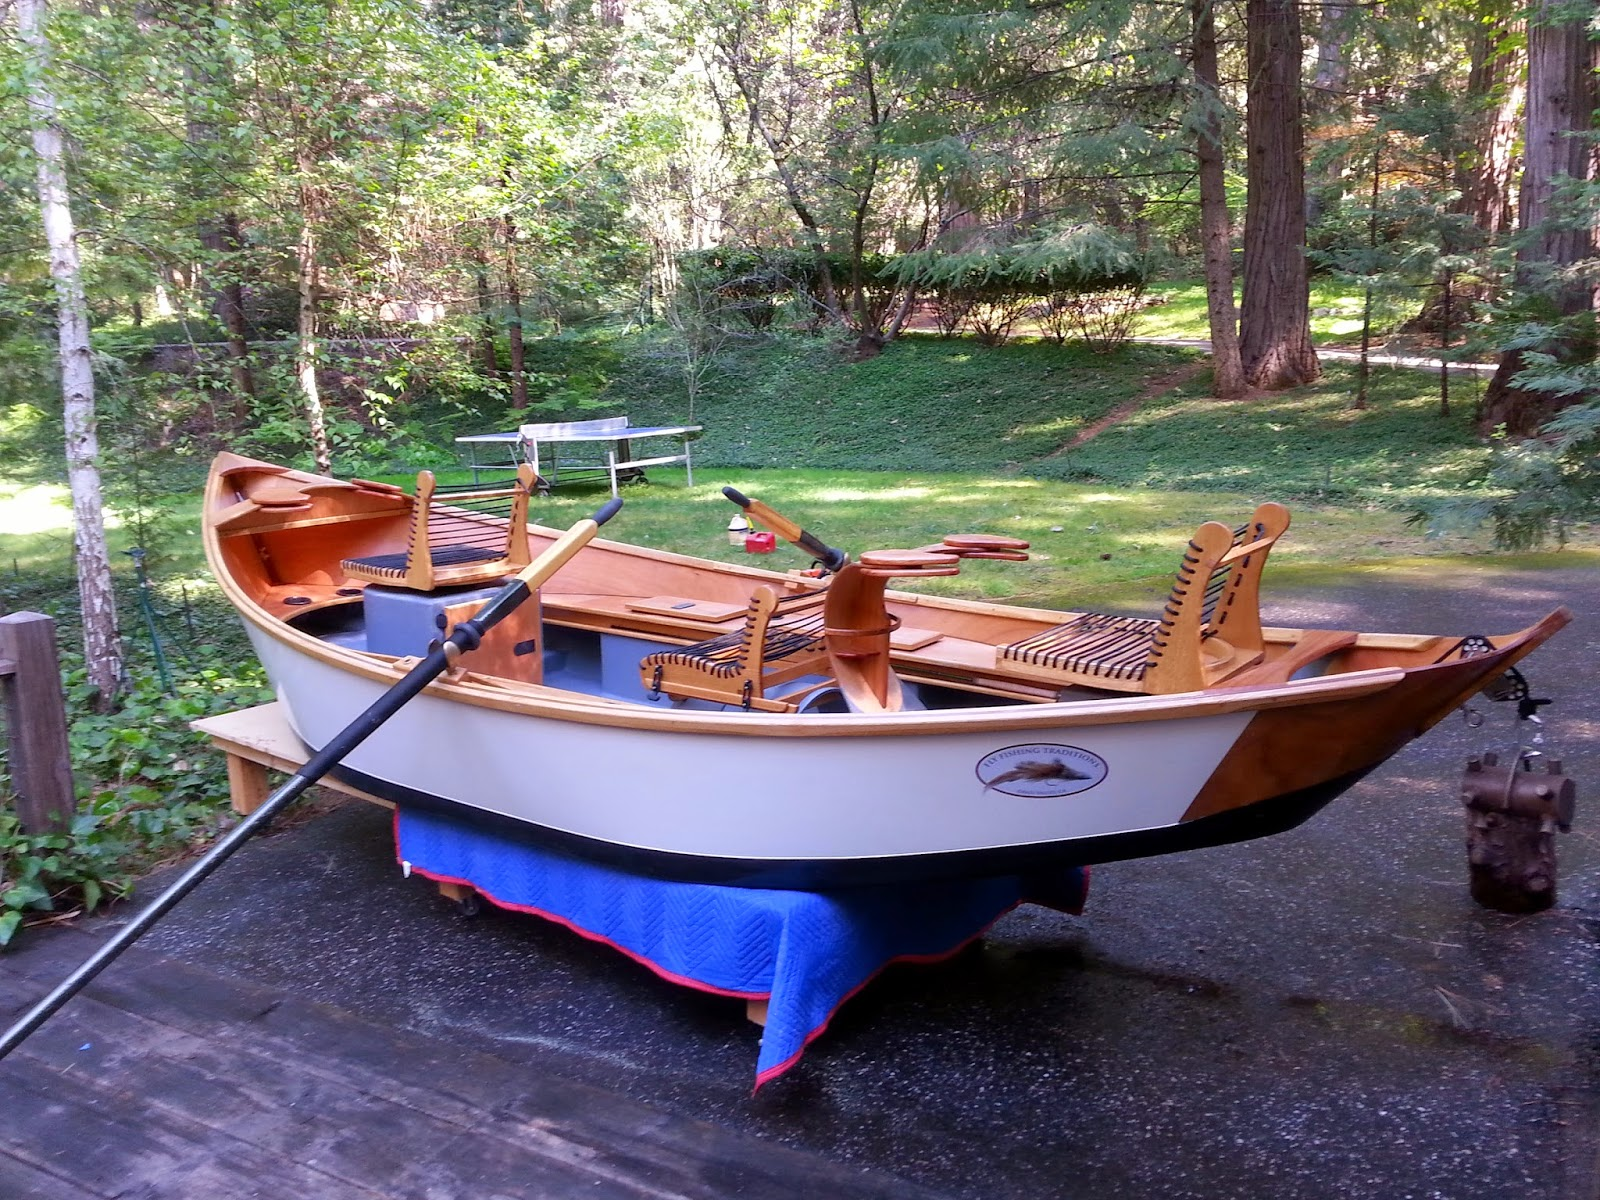 Fly fishing traditions kingfisher drift boat build i 39 m done for Drift boat fishing